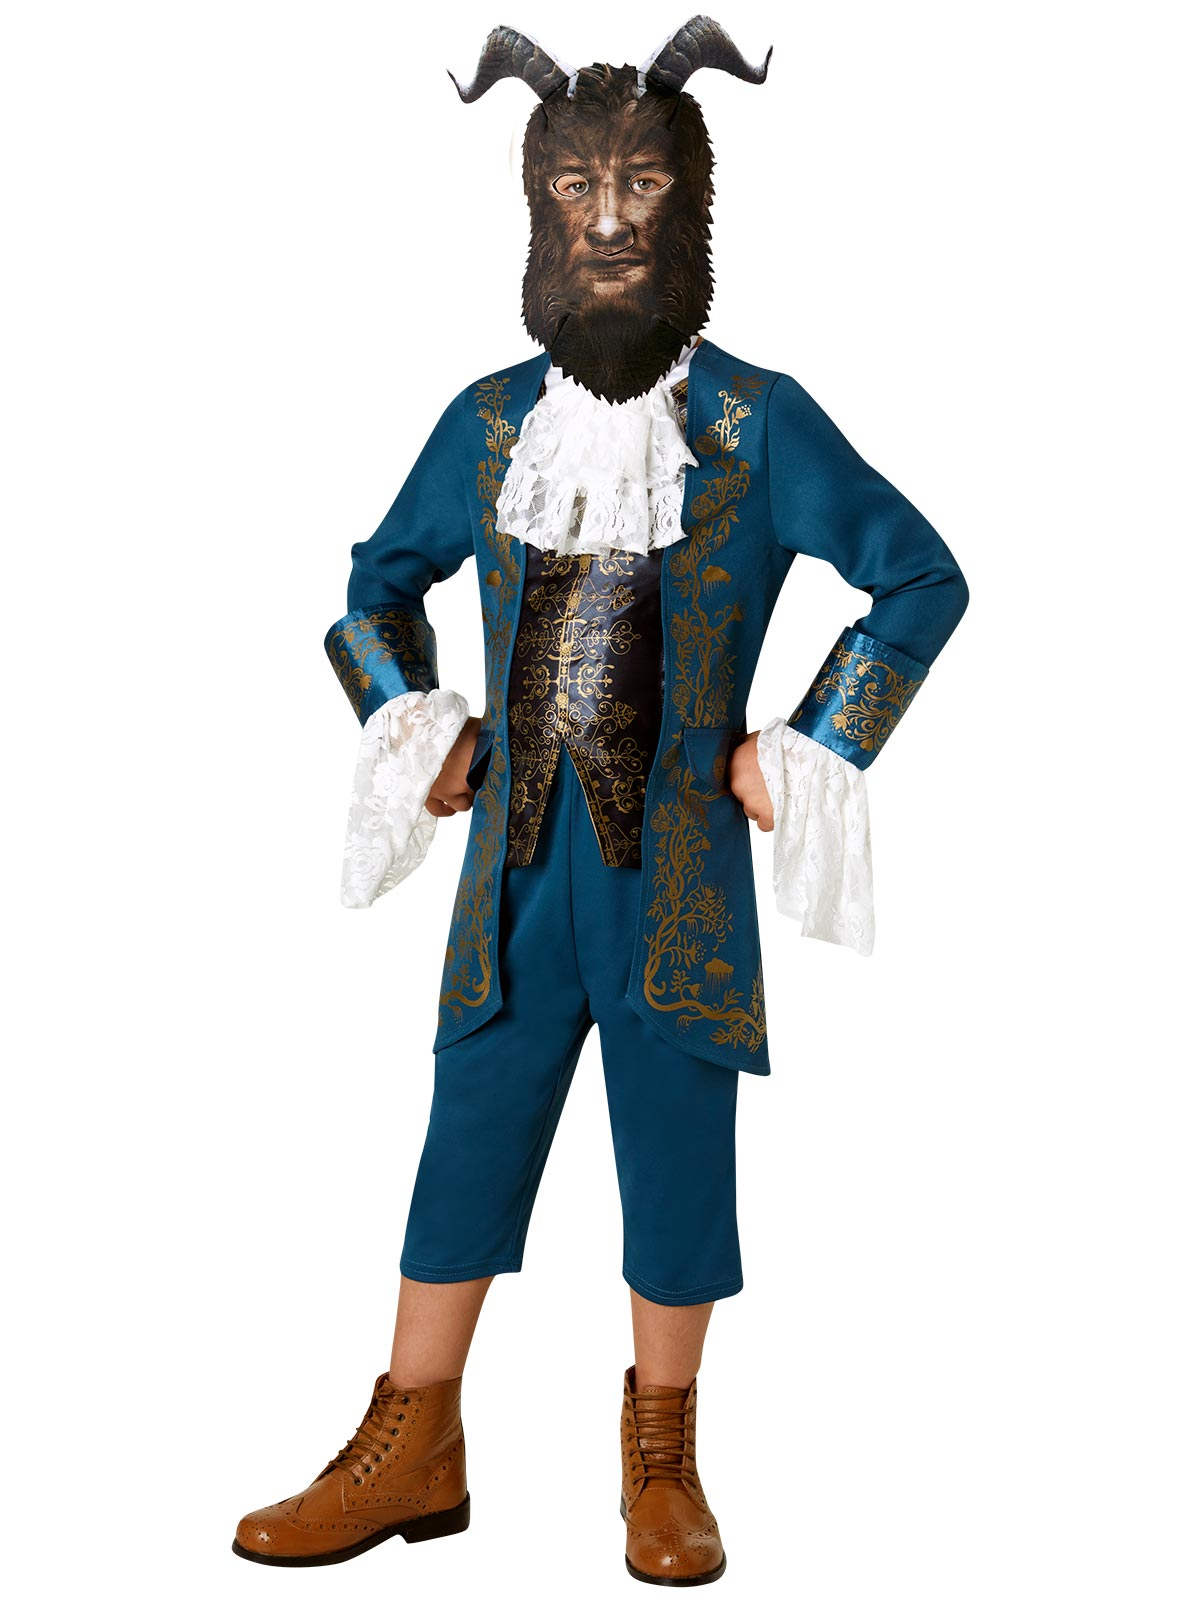 Beast Live Action Costume - Buy Online Only